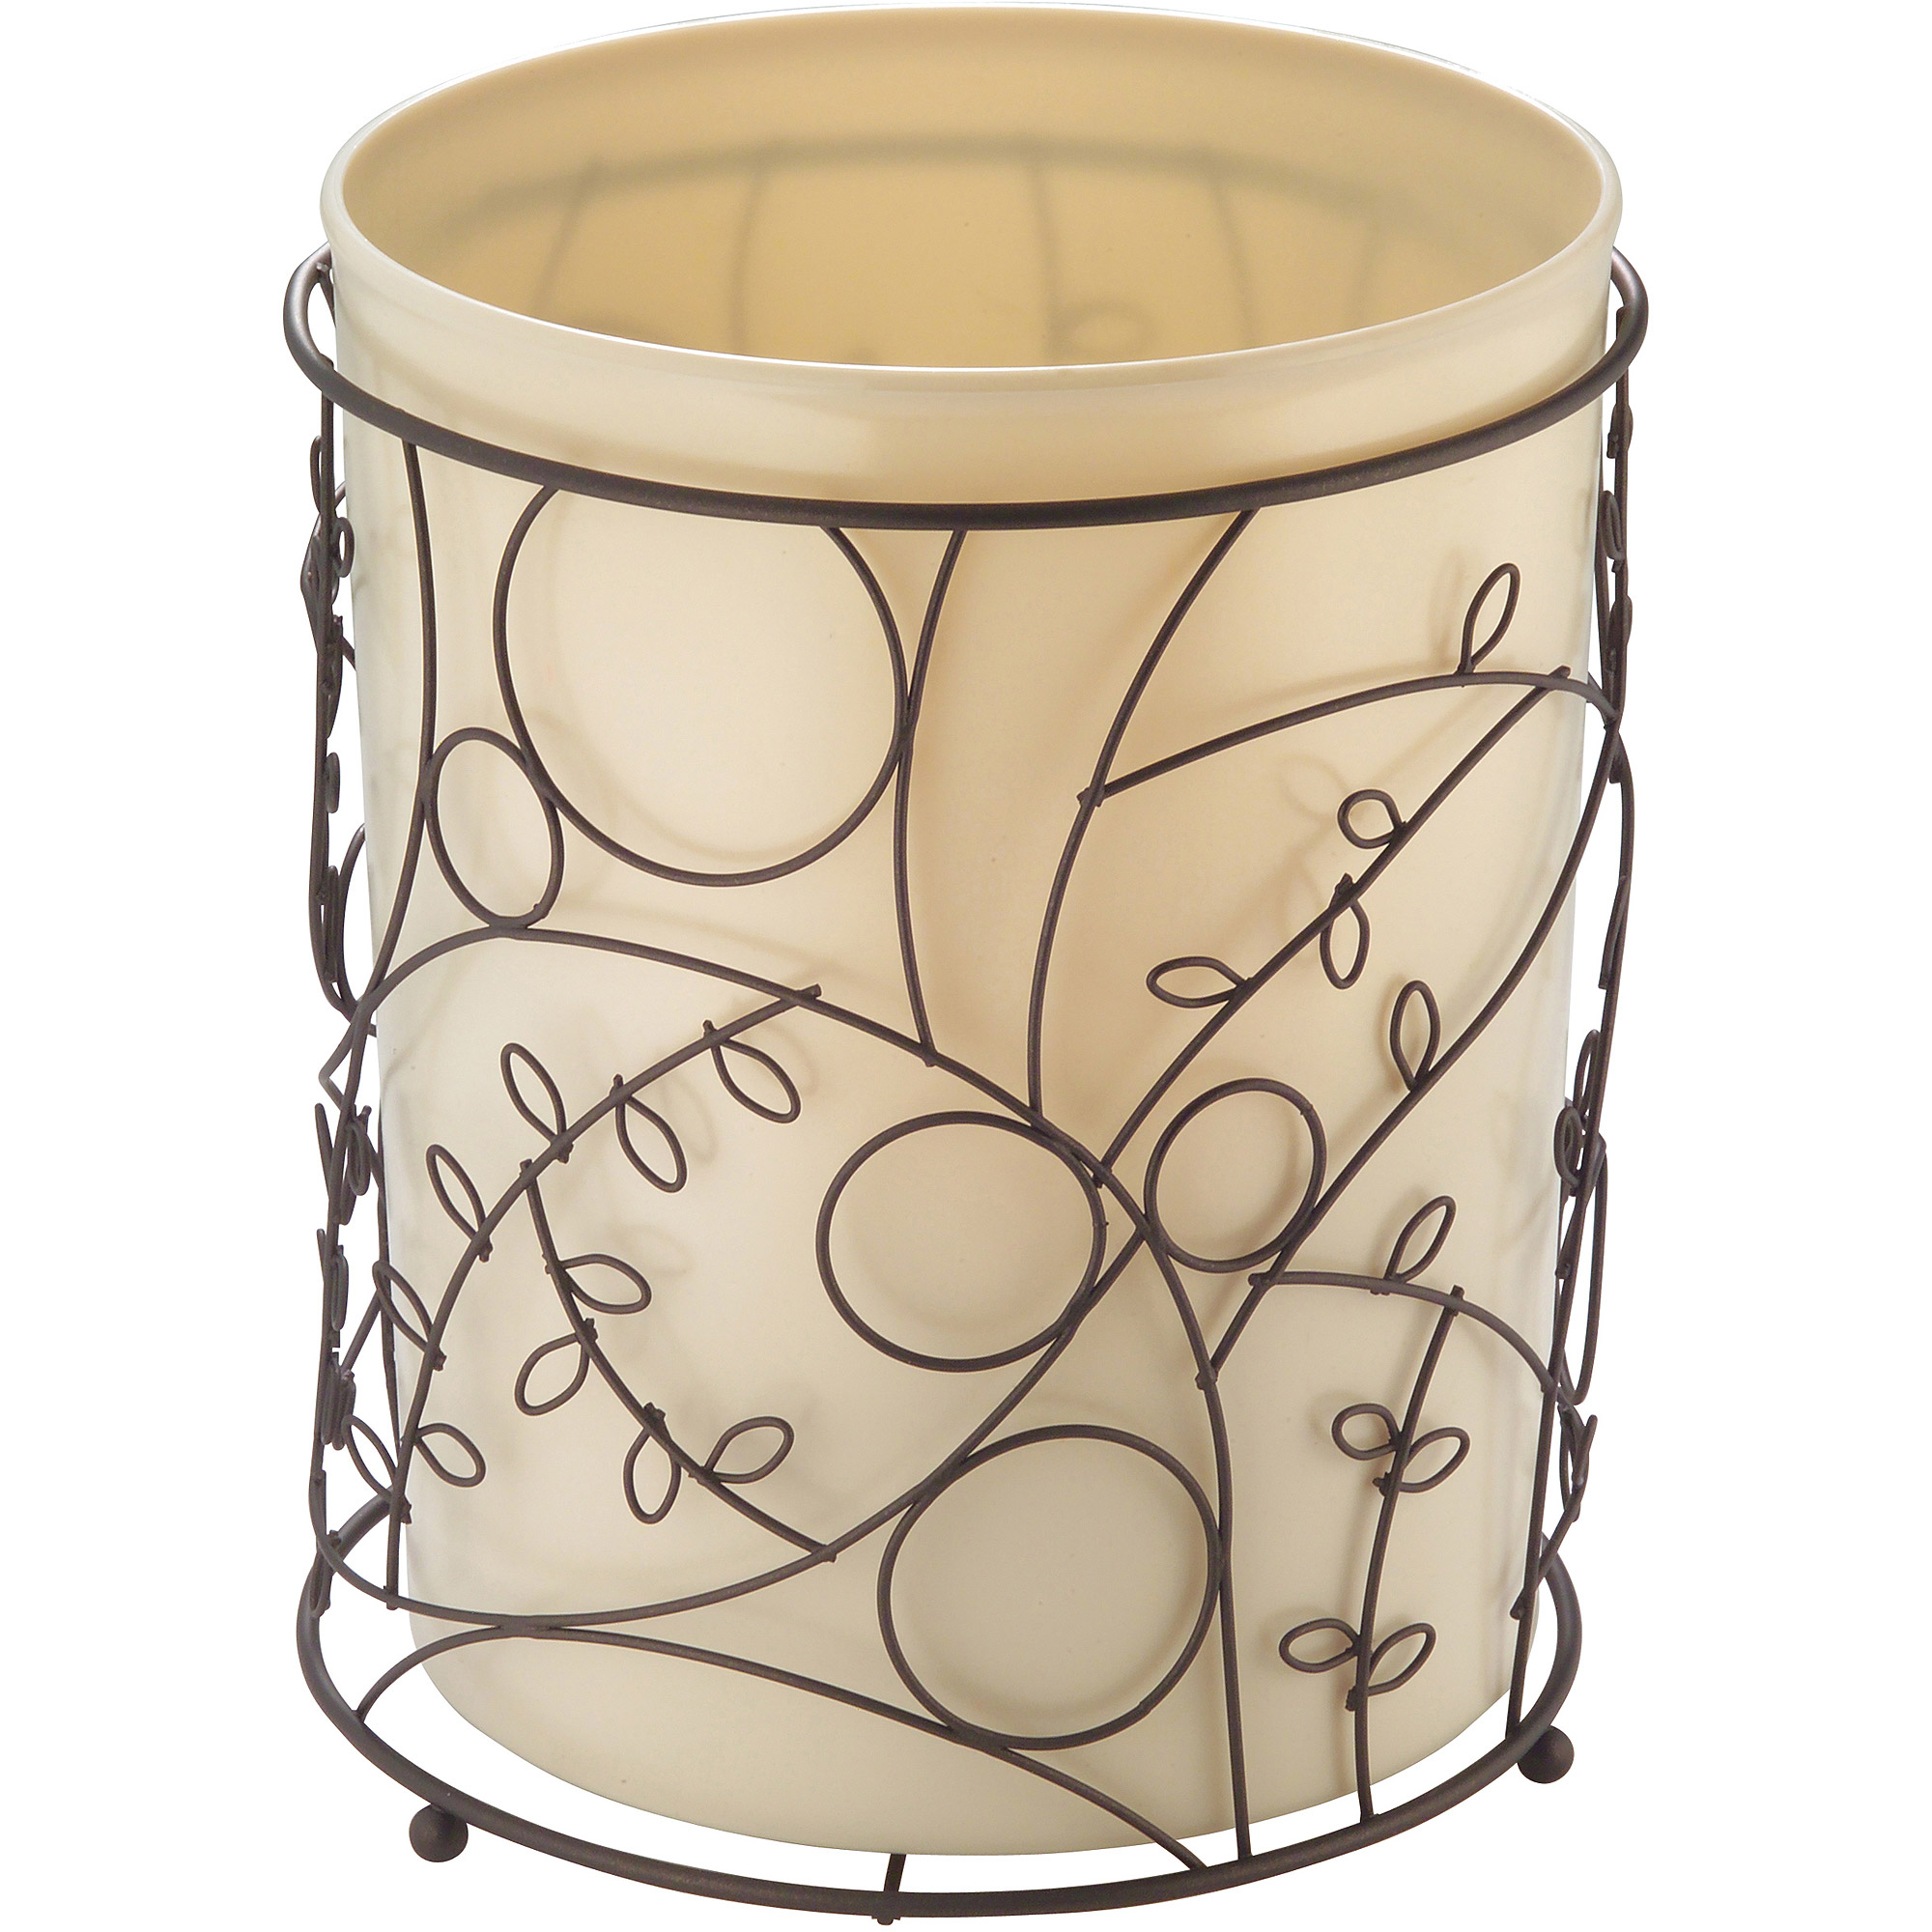 InterDesign Twigz Wastebasket Trash Can